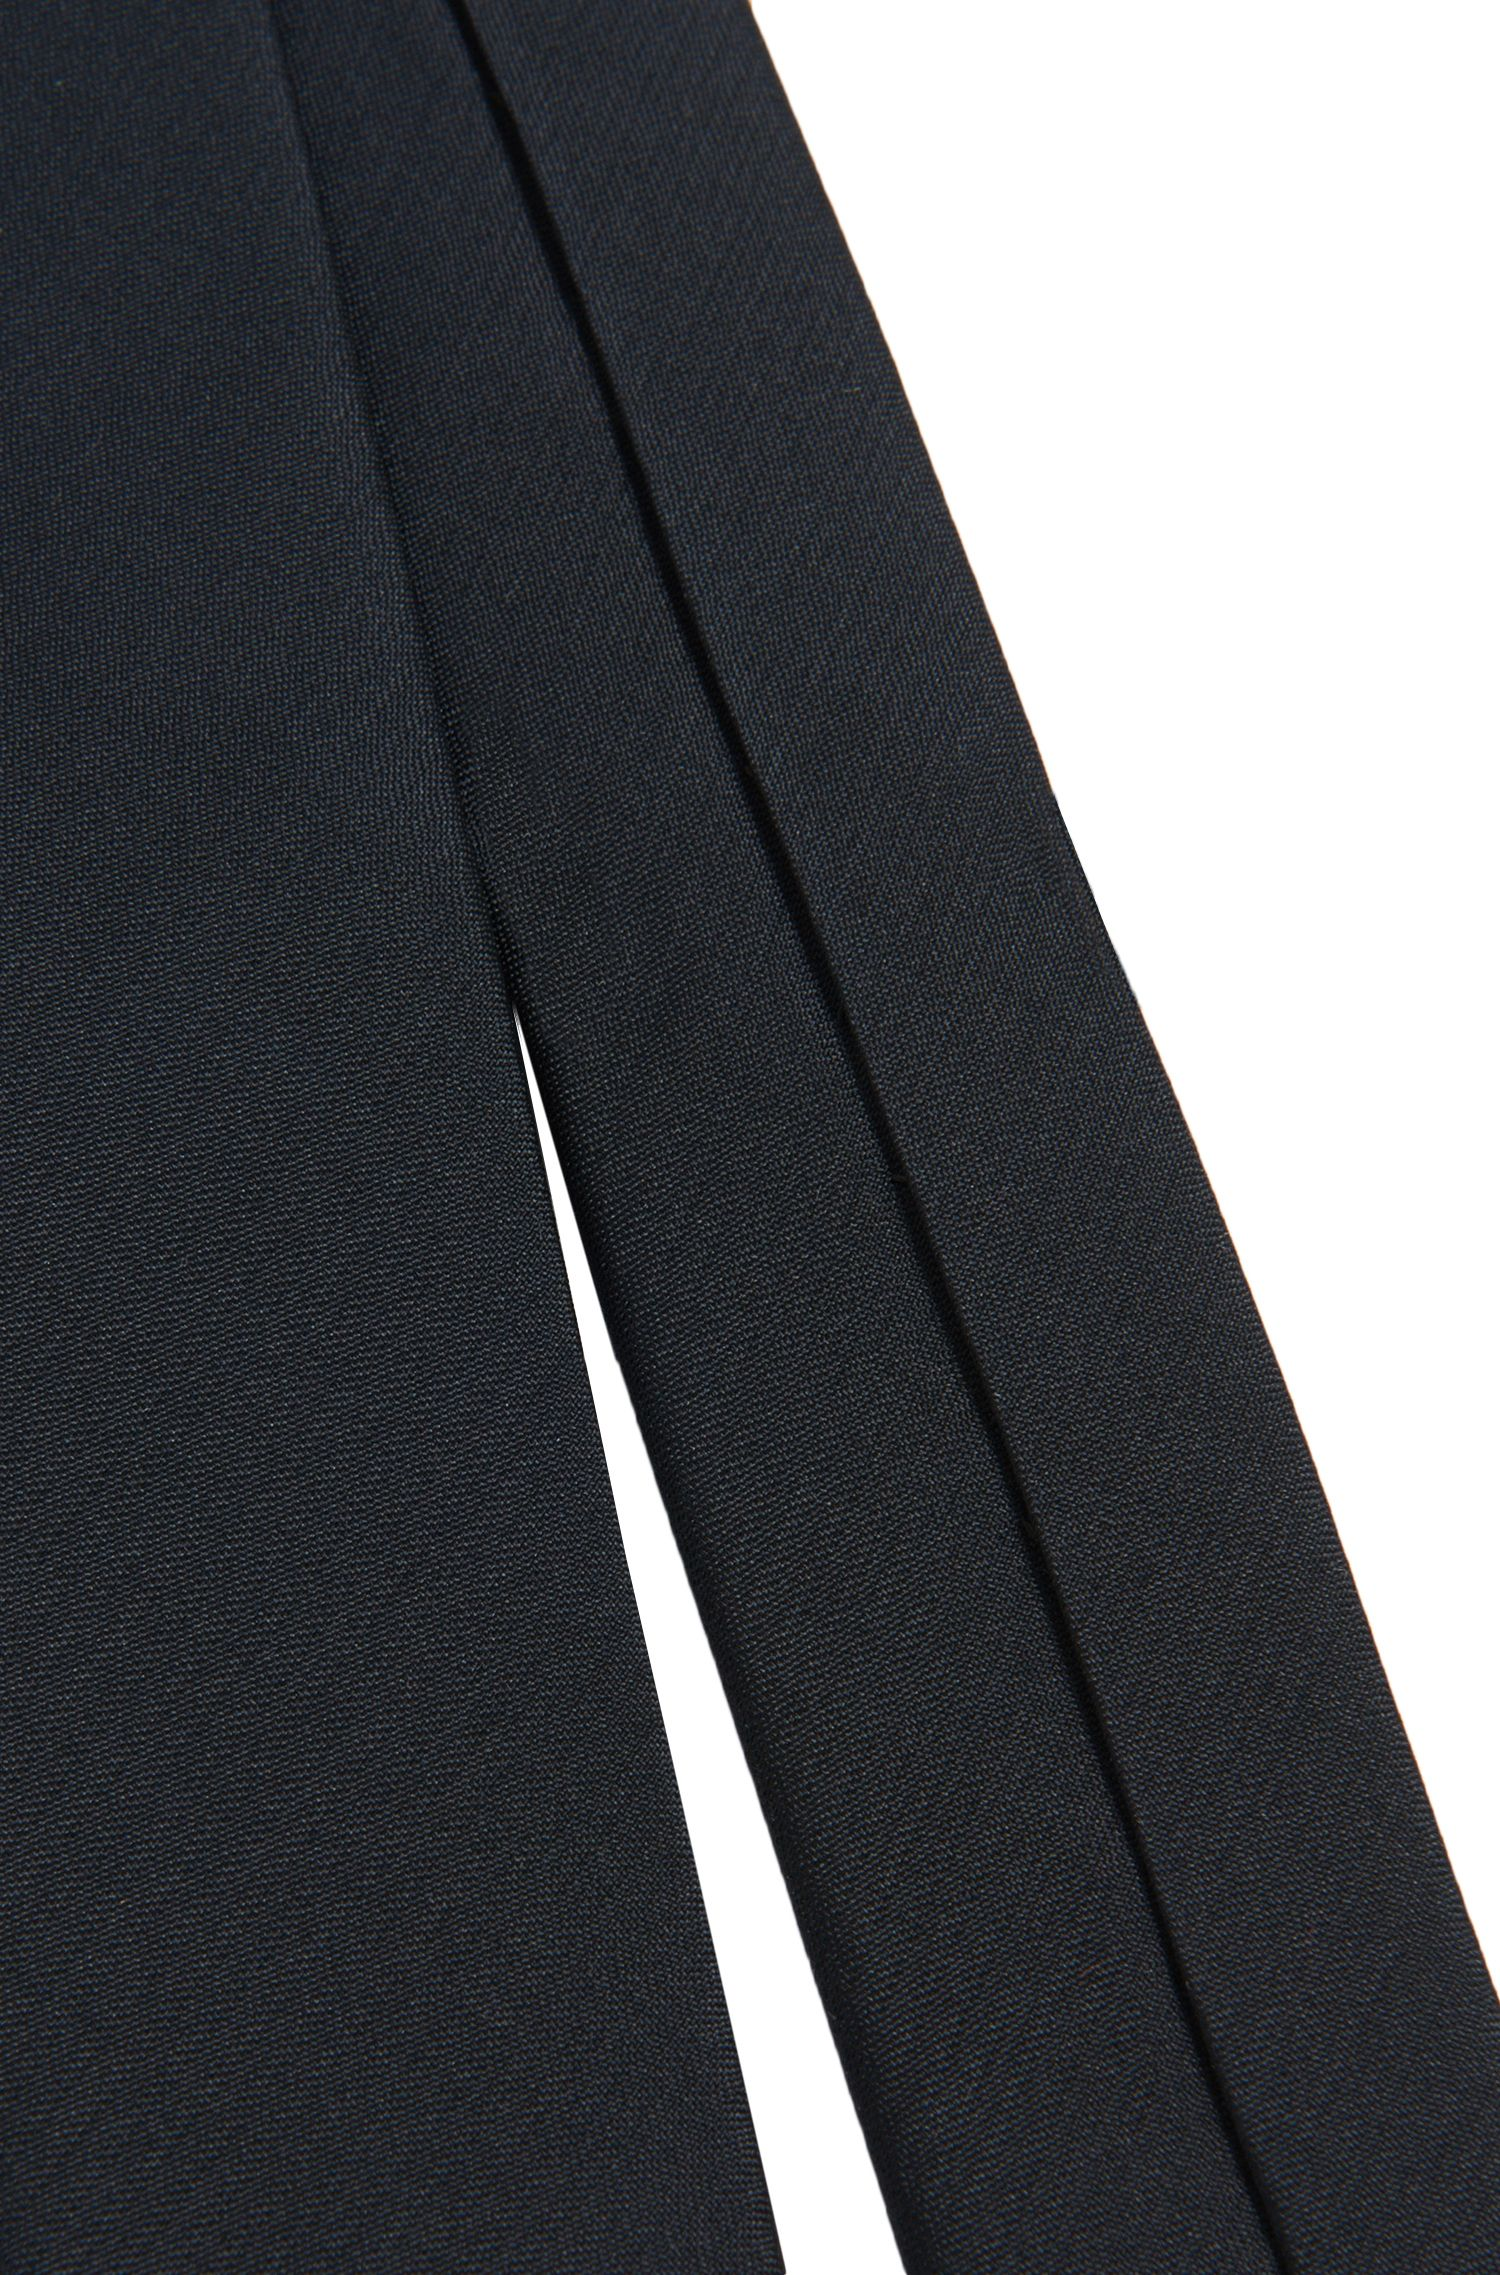 Plain-coloured kids' tie in silk: 'J20U38'